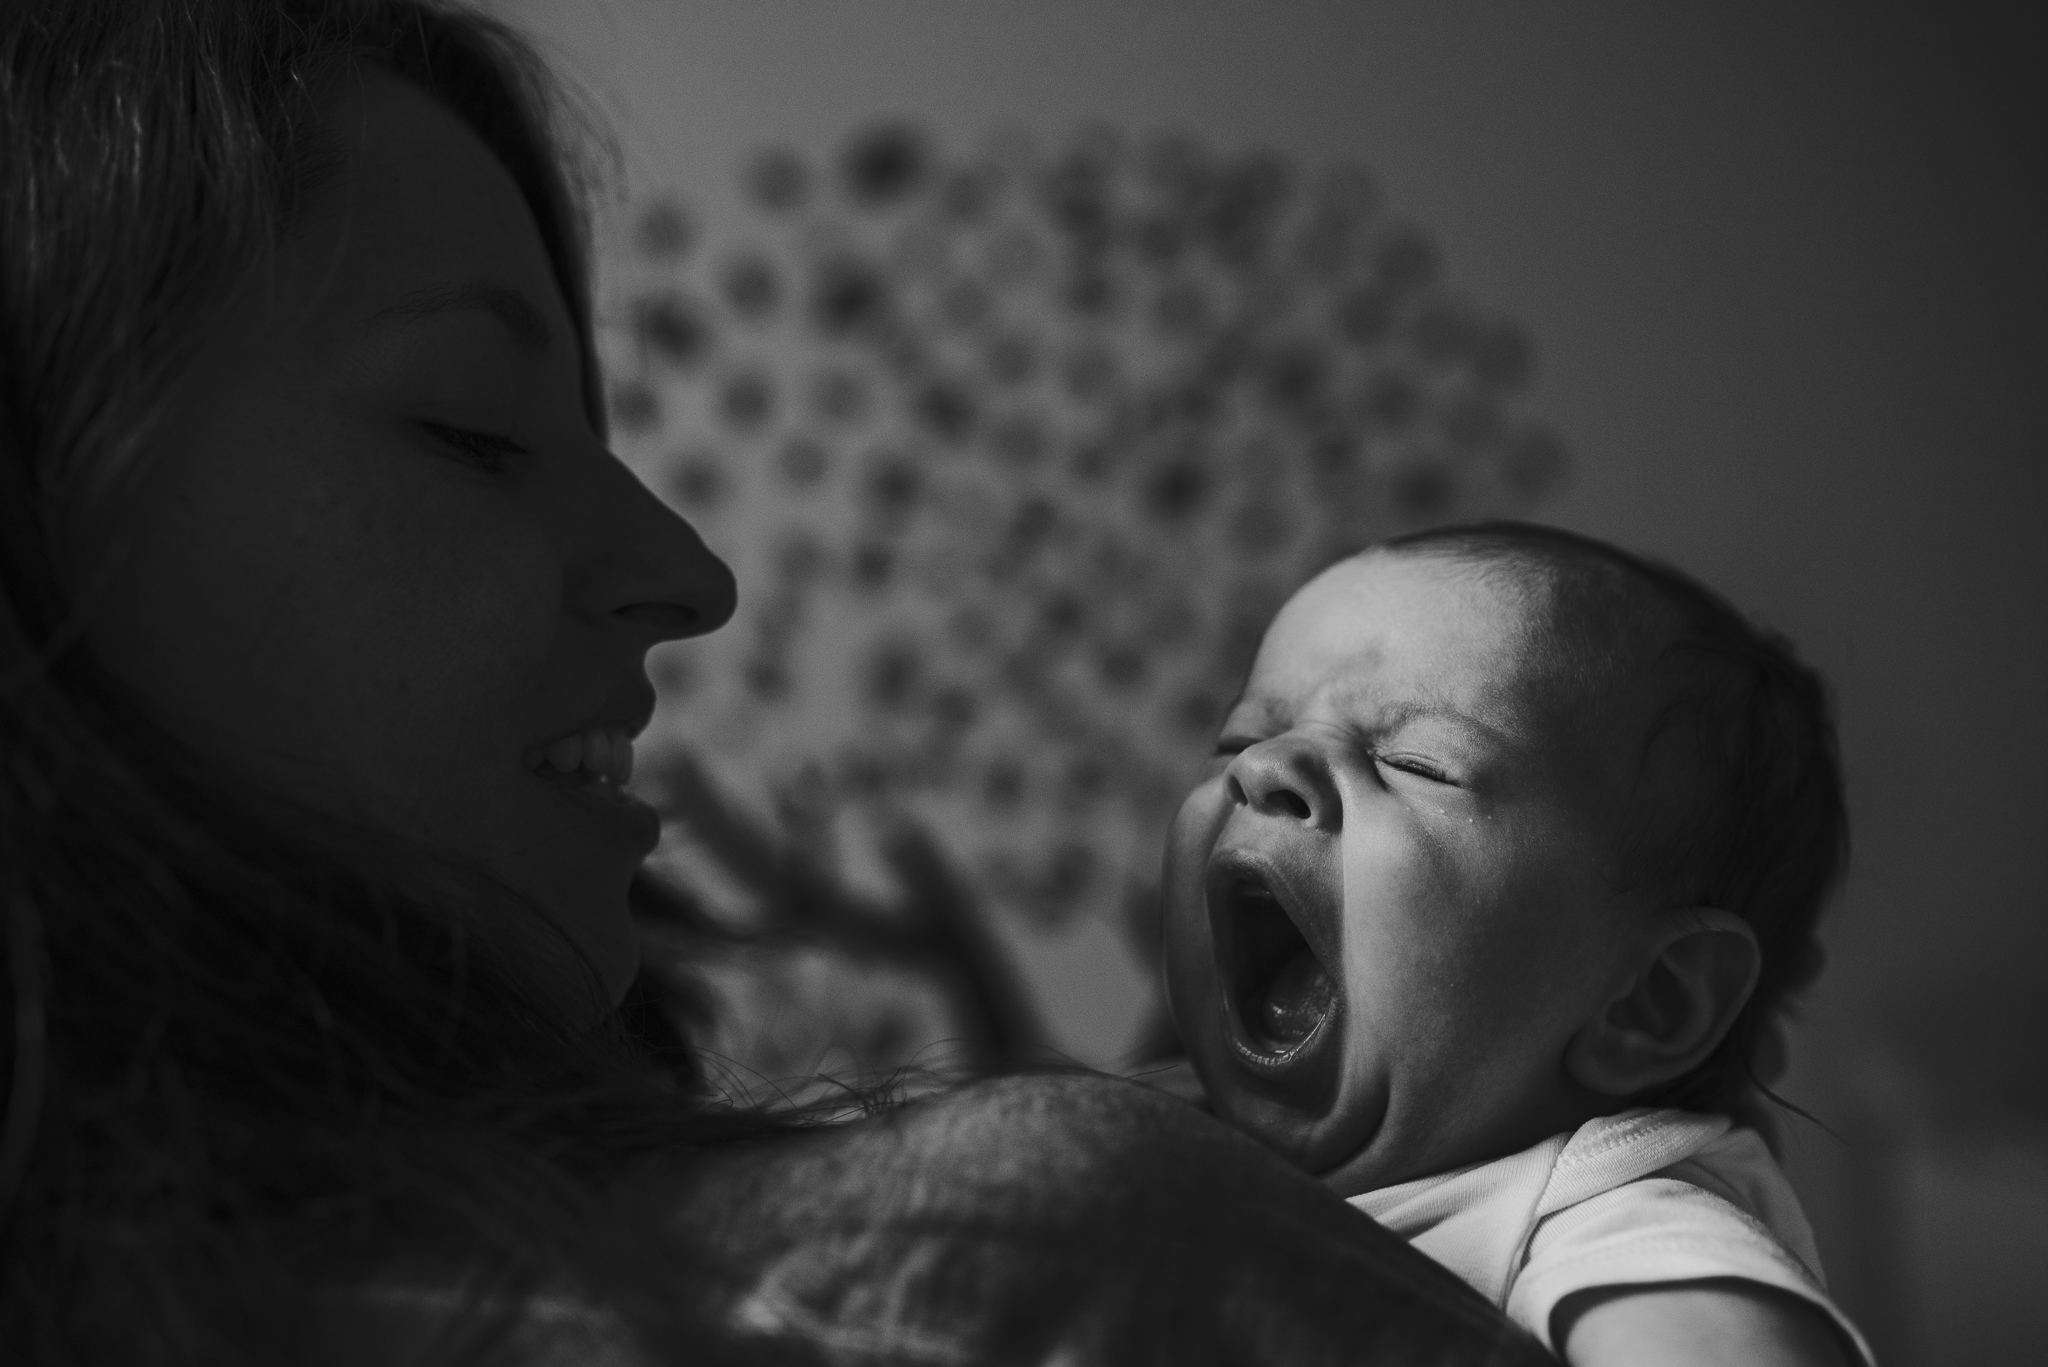 Newborn baby yawing in mom's arms.jpg